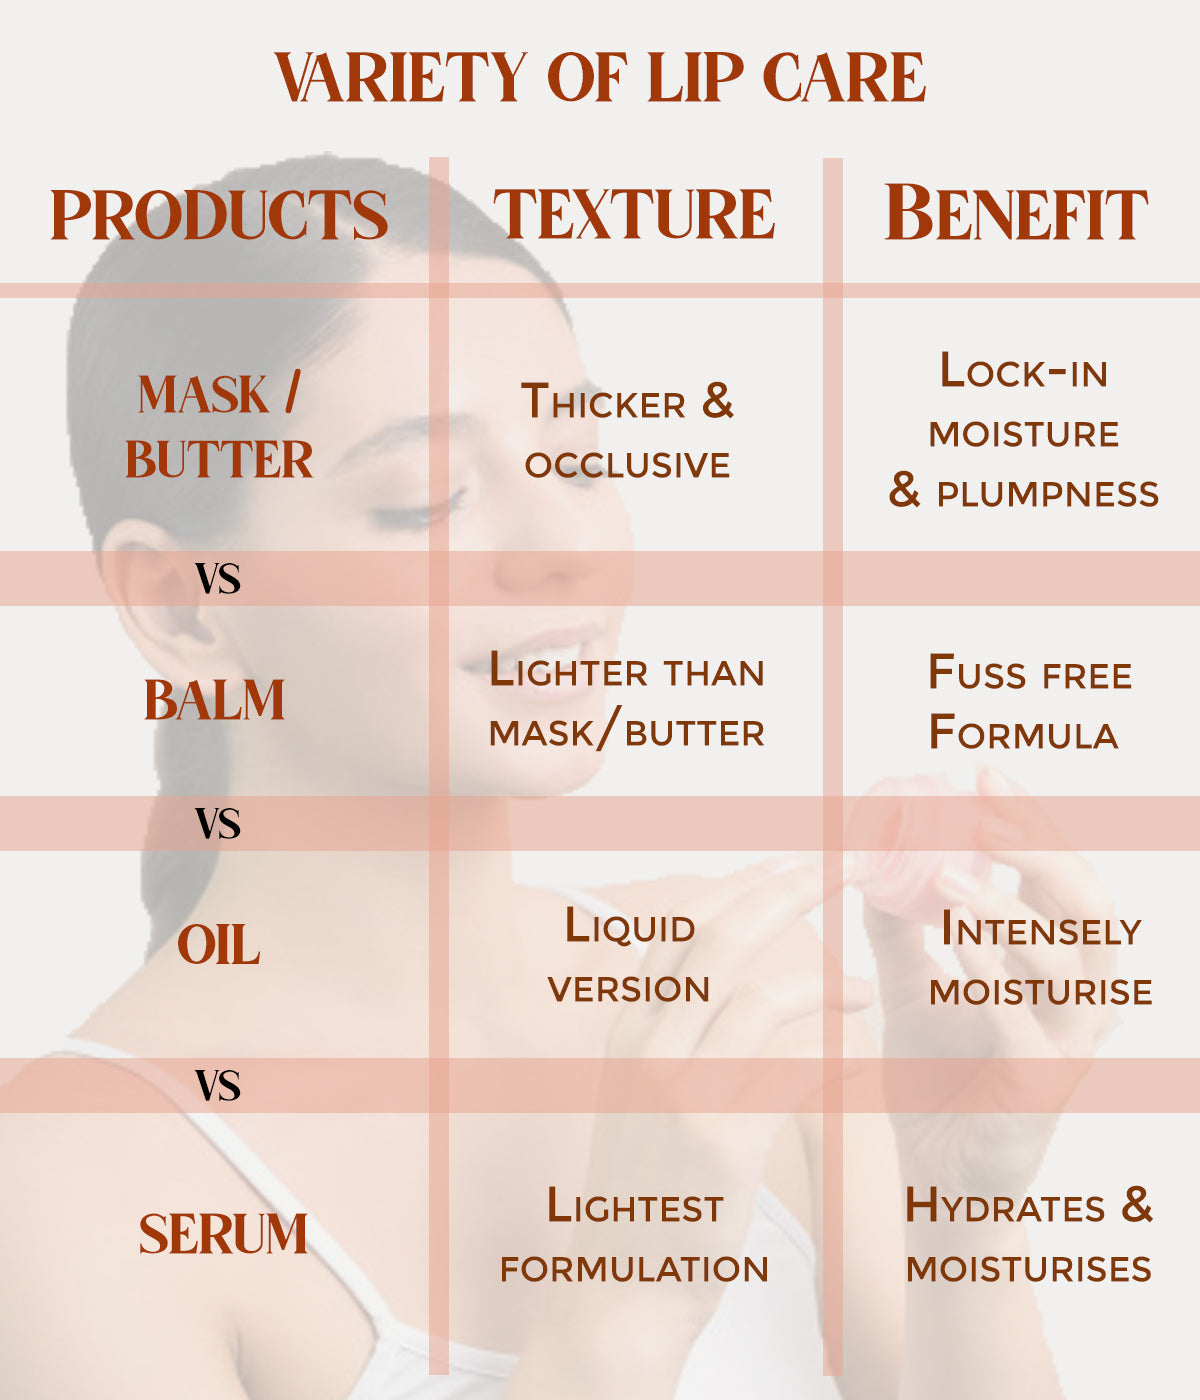 This is an image explaining lip masks, lip butters, lip balms and lip oils